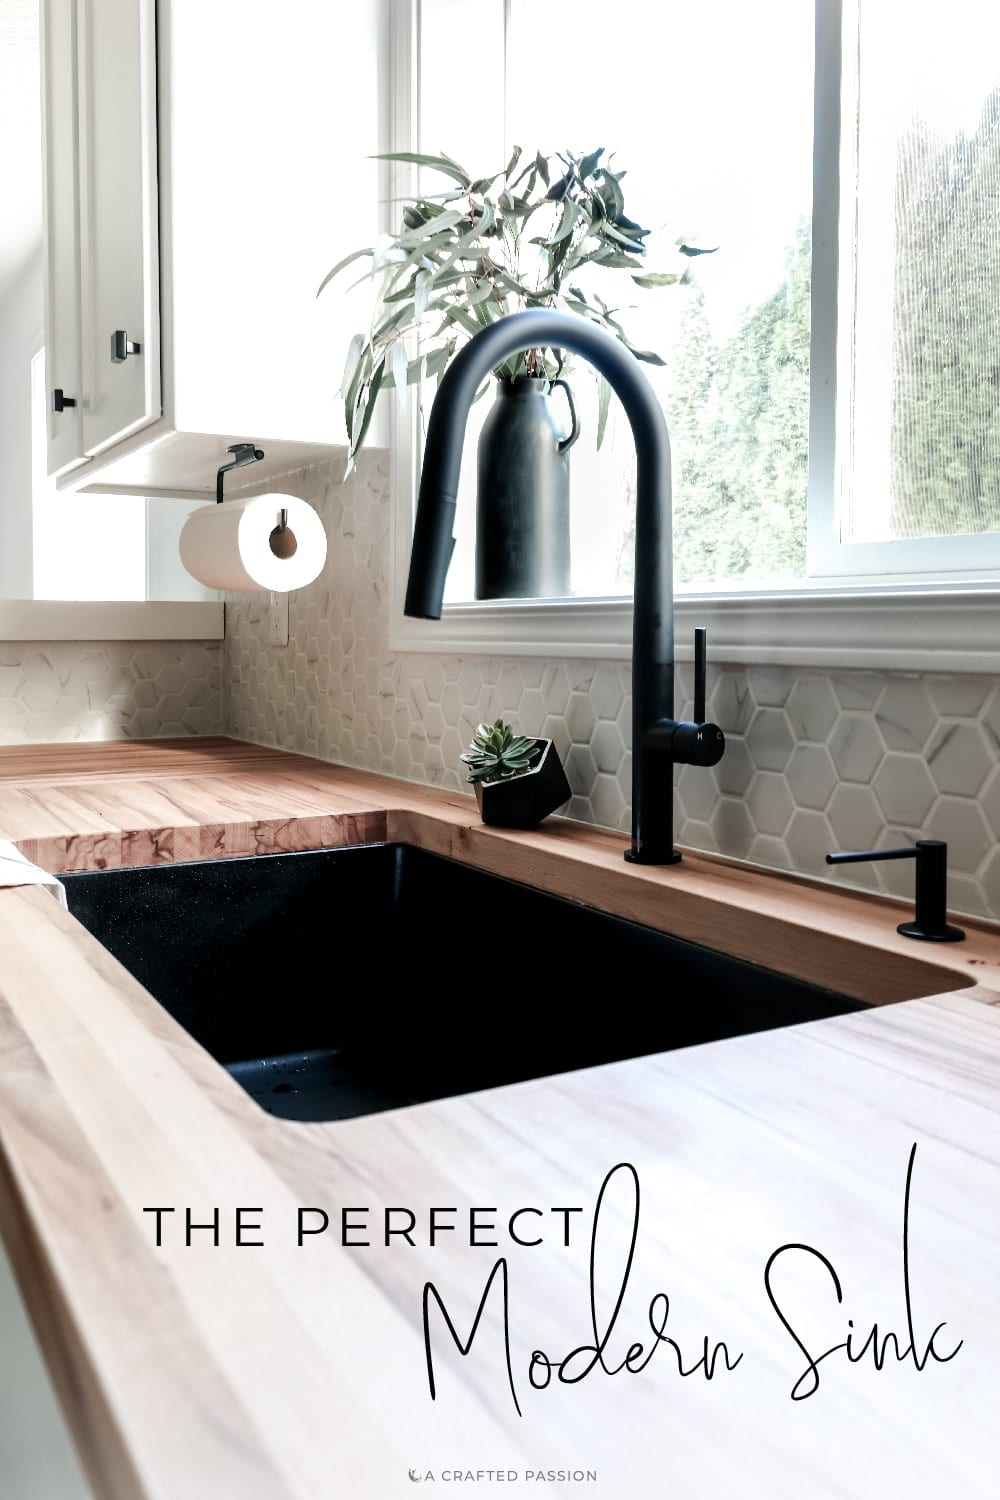 Looking for a new sink? With clean lines, a black finish, and easy to clean surface, this is the perfect modern kitchen sink! Sponsored by Elkay #modernkitchen #kitchensink